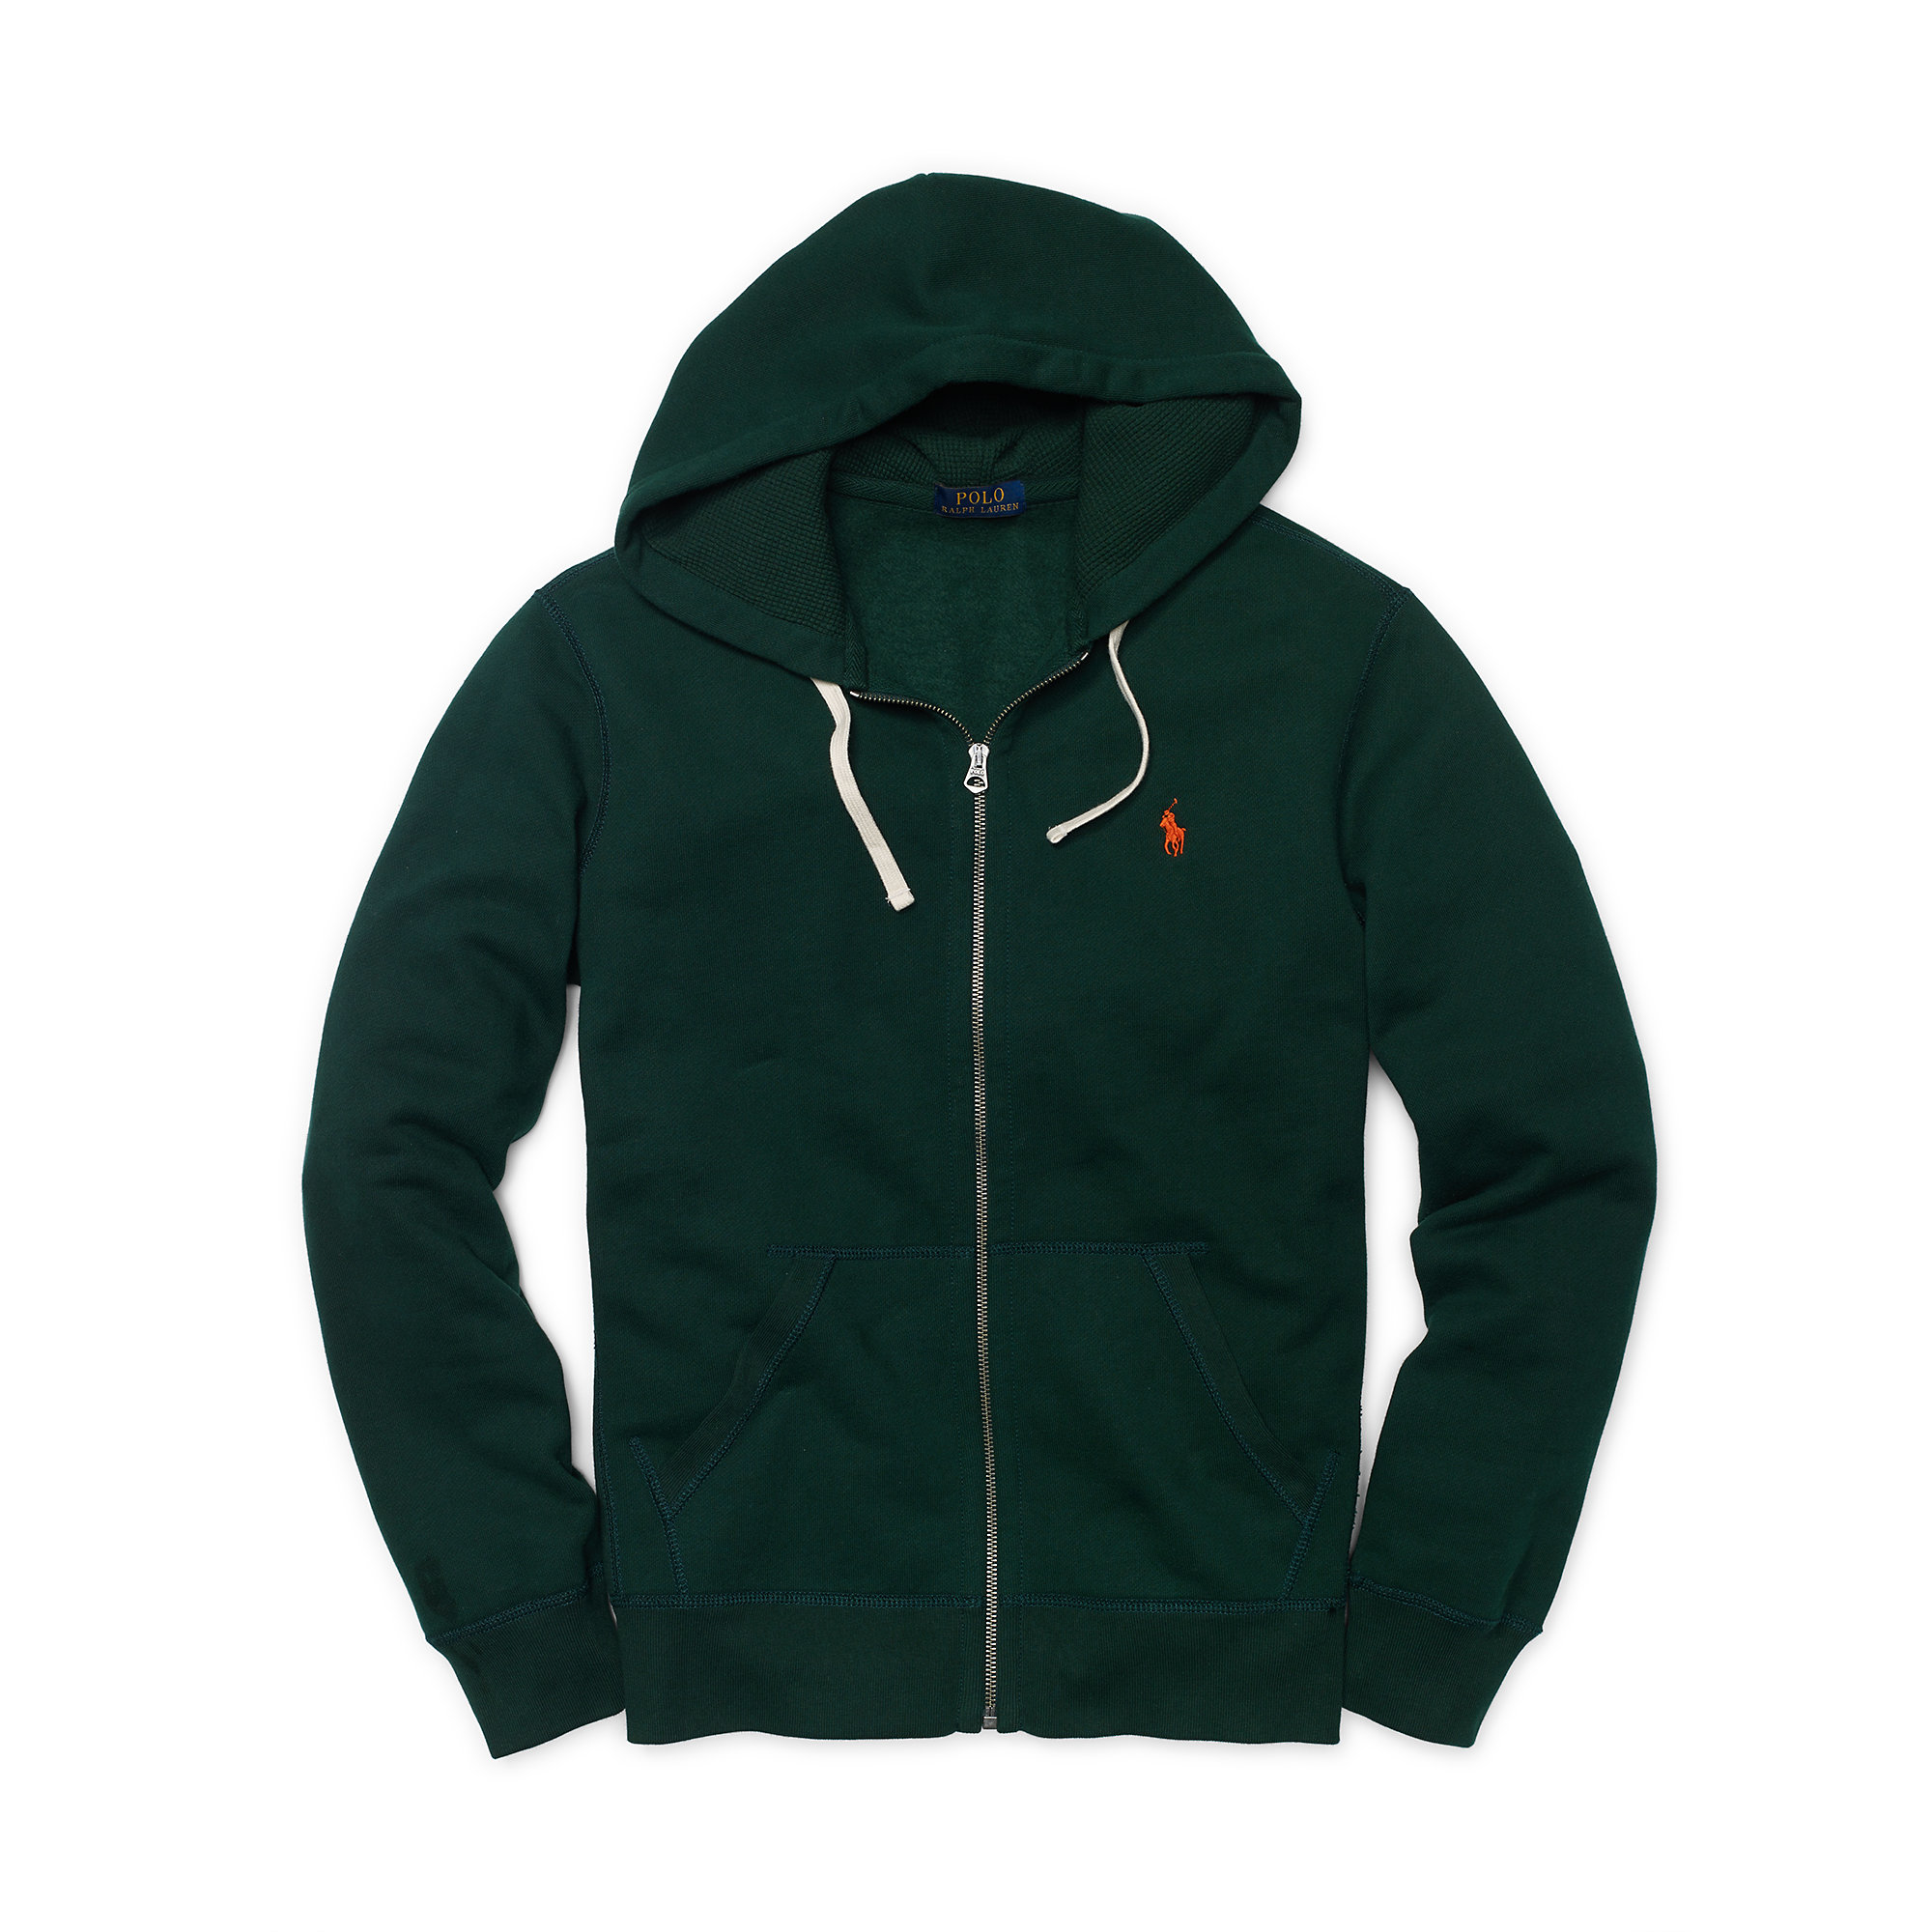 polo ralph lauren hoodie hoodies view all polo ralph. Black Bedroom Furniture Sets. Home Design Ideas